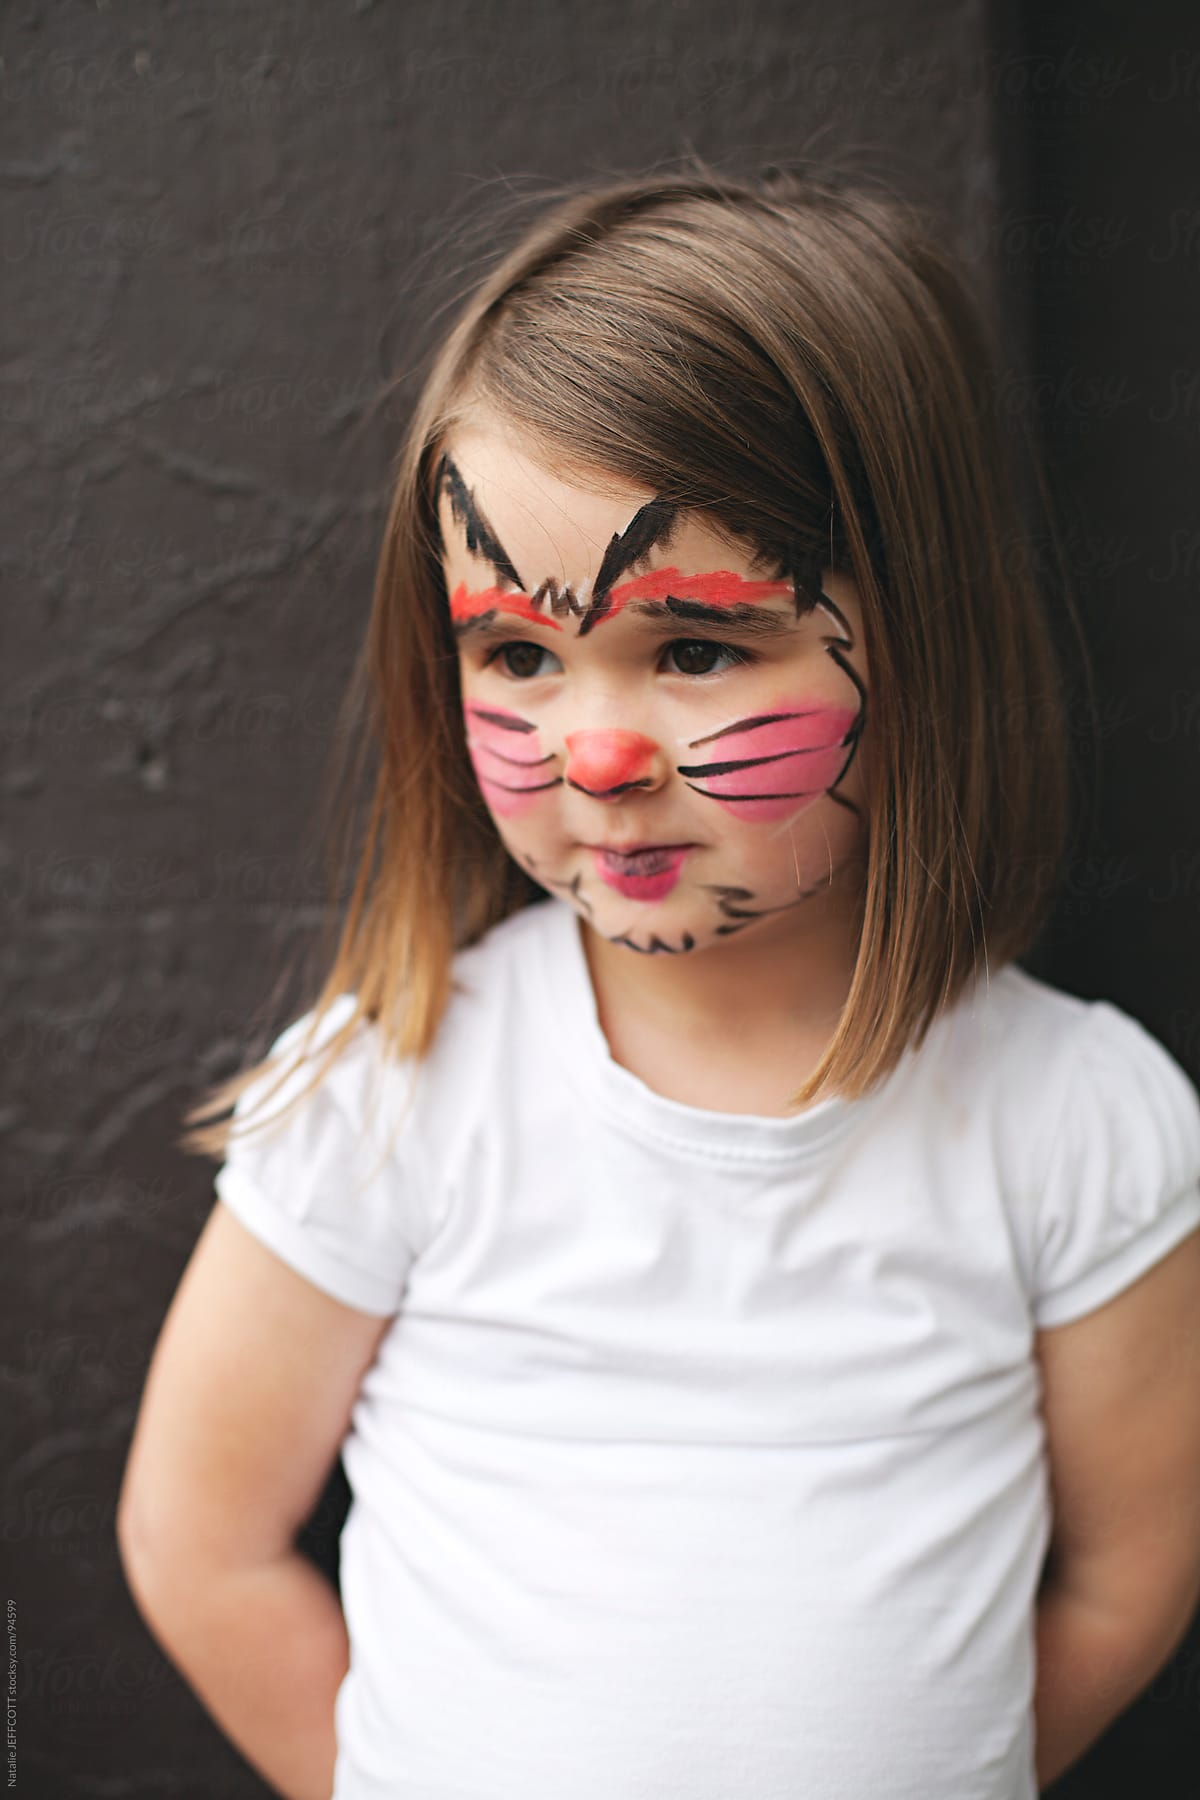 young girl with face painted a s black cat for halloween | stocksy